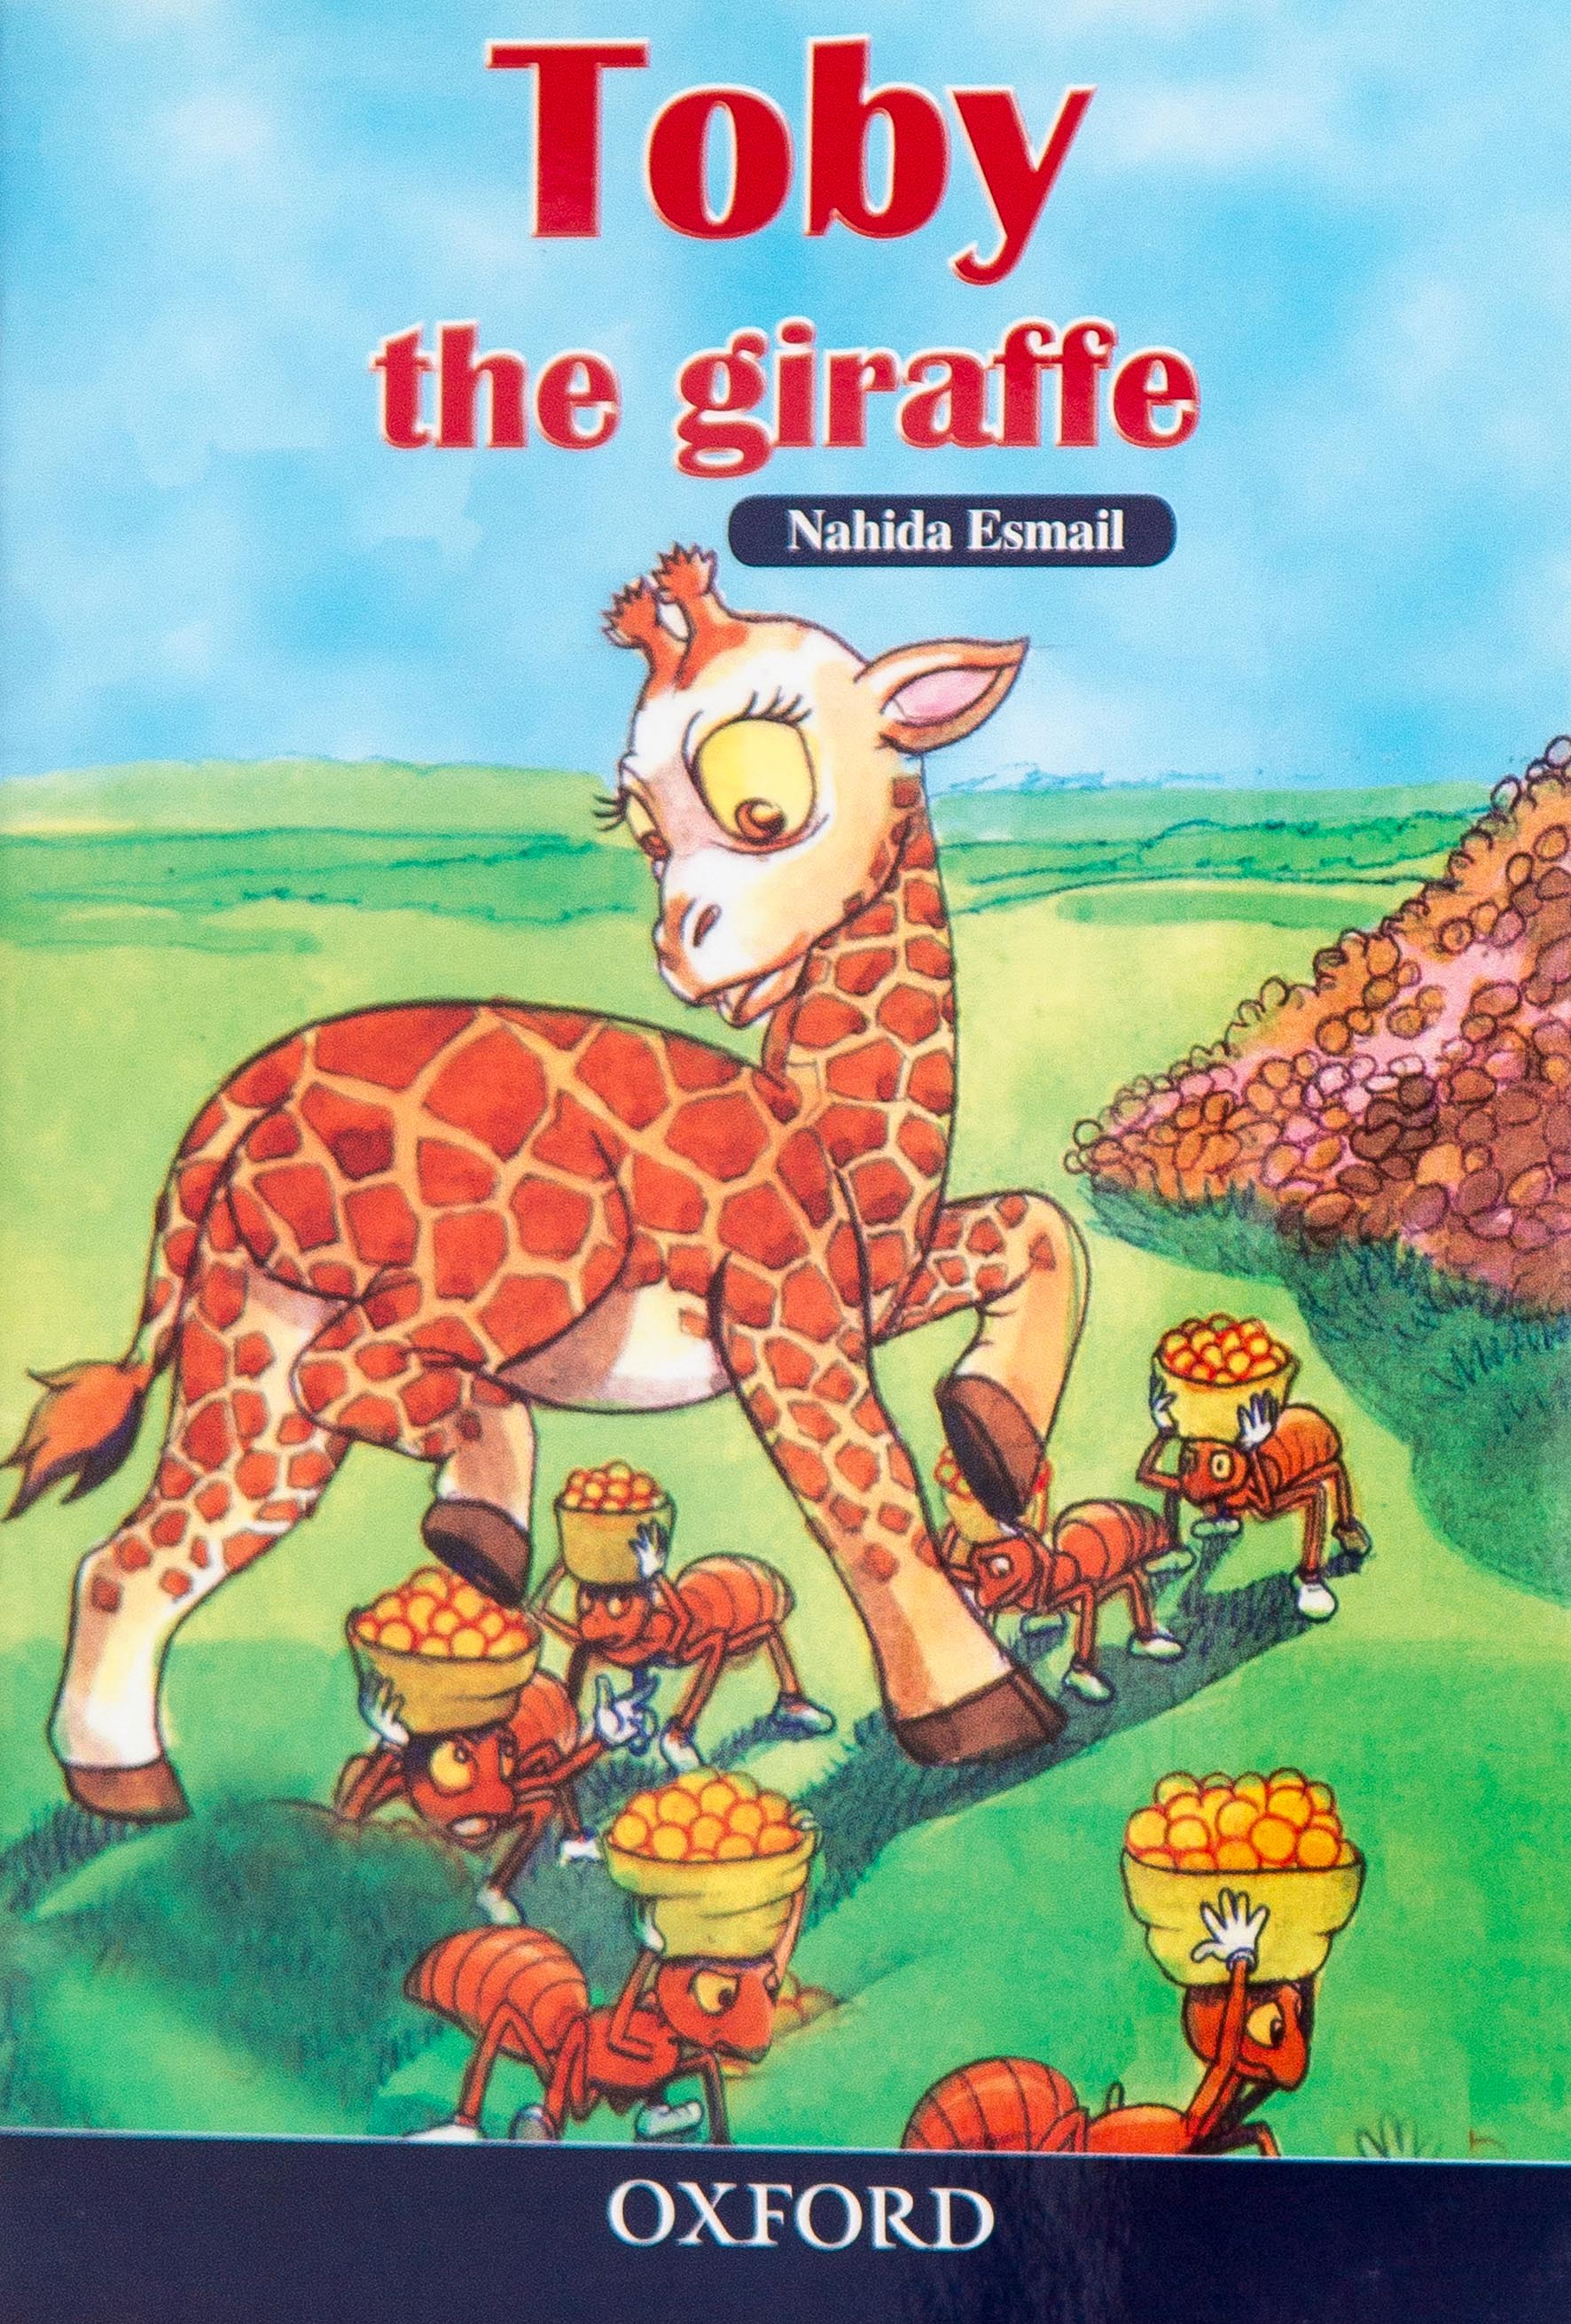 - Toby the giraffe is for children aged 5 – 8 years. It is a story about the giraffe that is getting ready to visit his friends as they count one to ten.